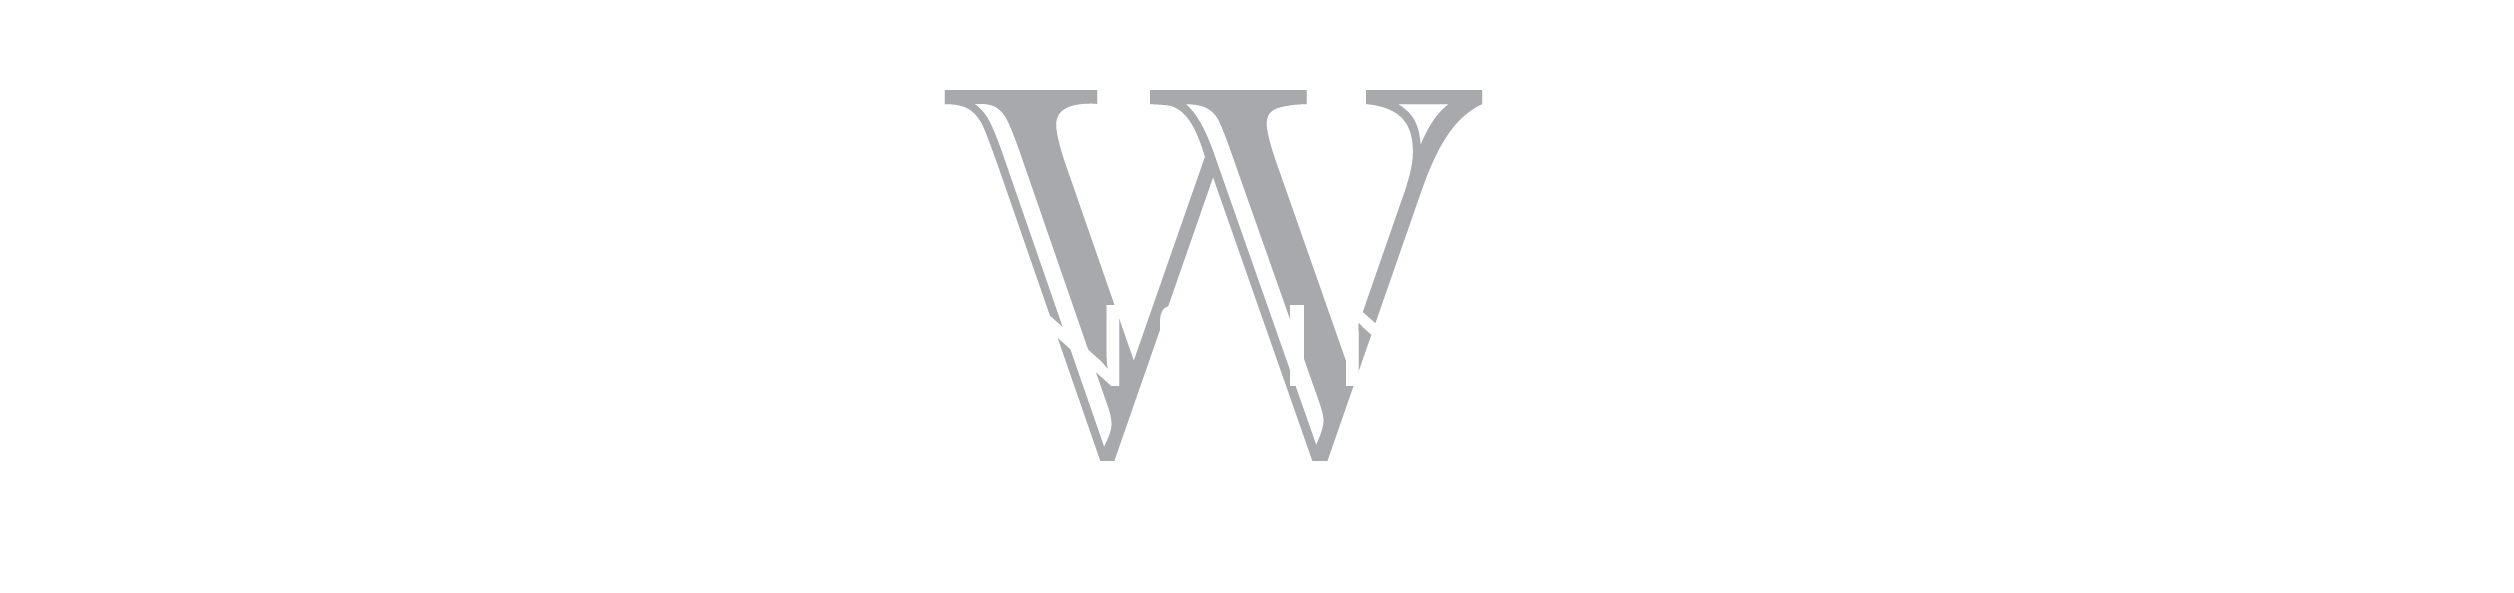 Winston Engineering Inc Logo